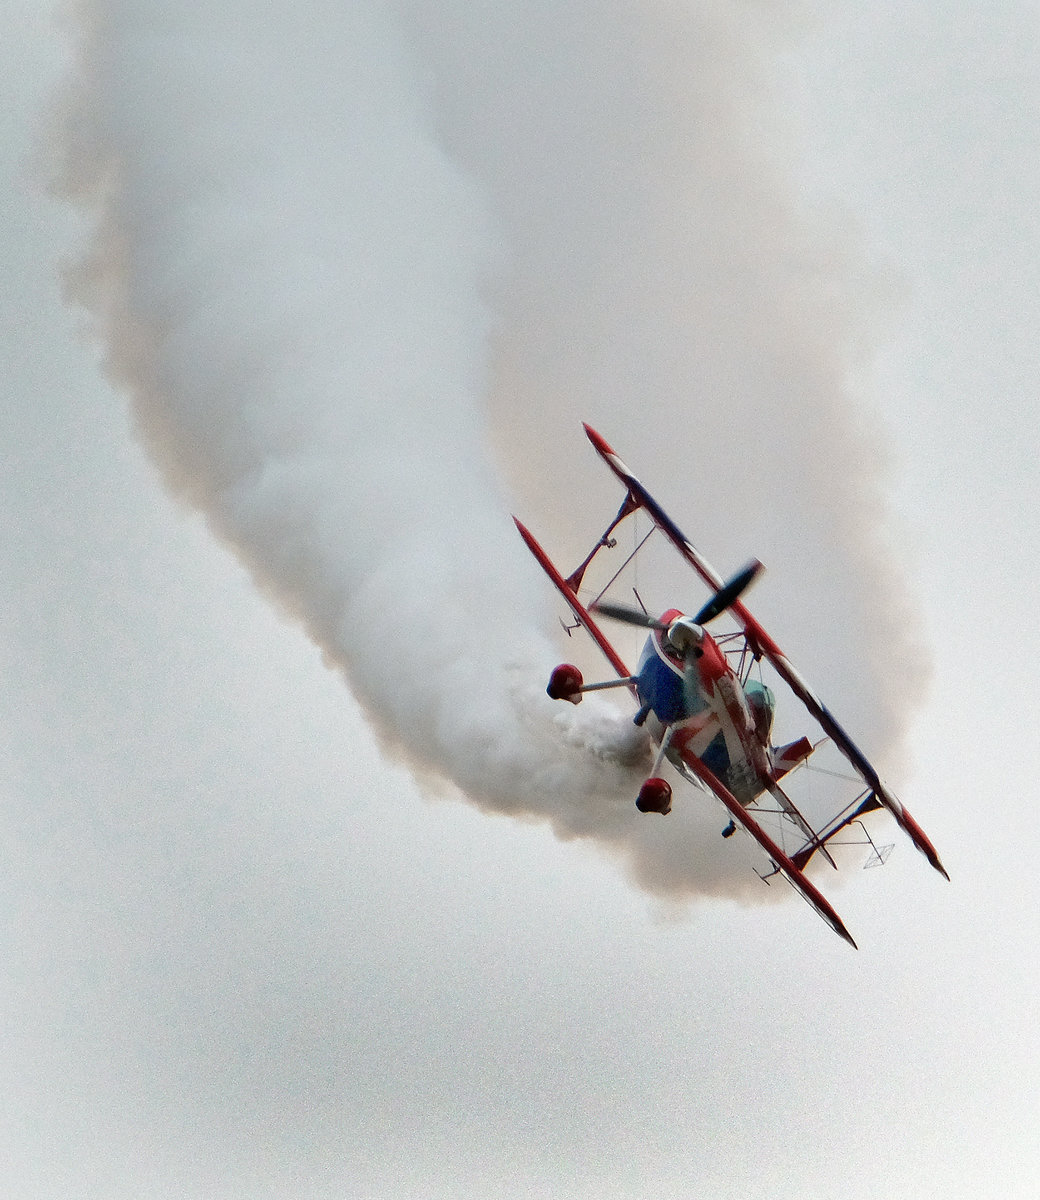 Pitts Special in action.